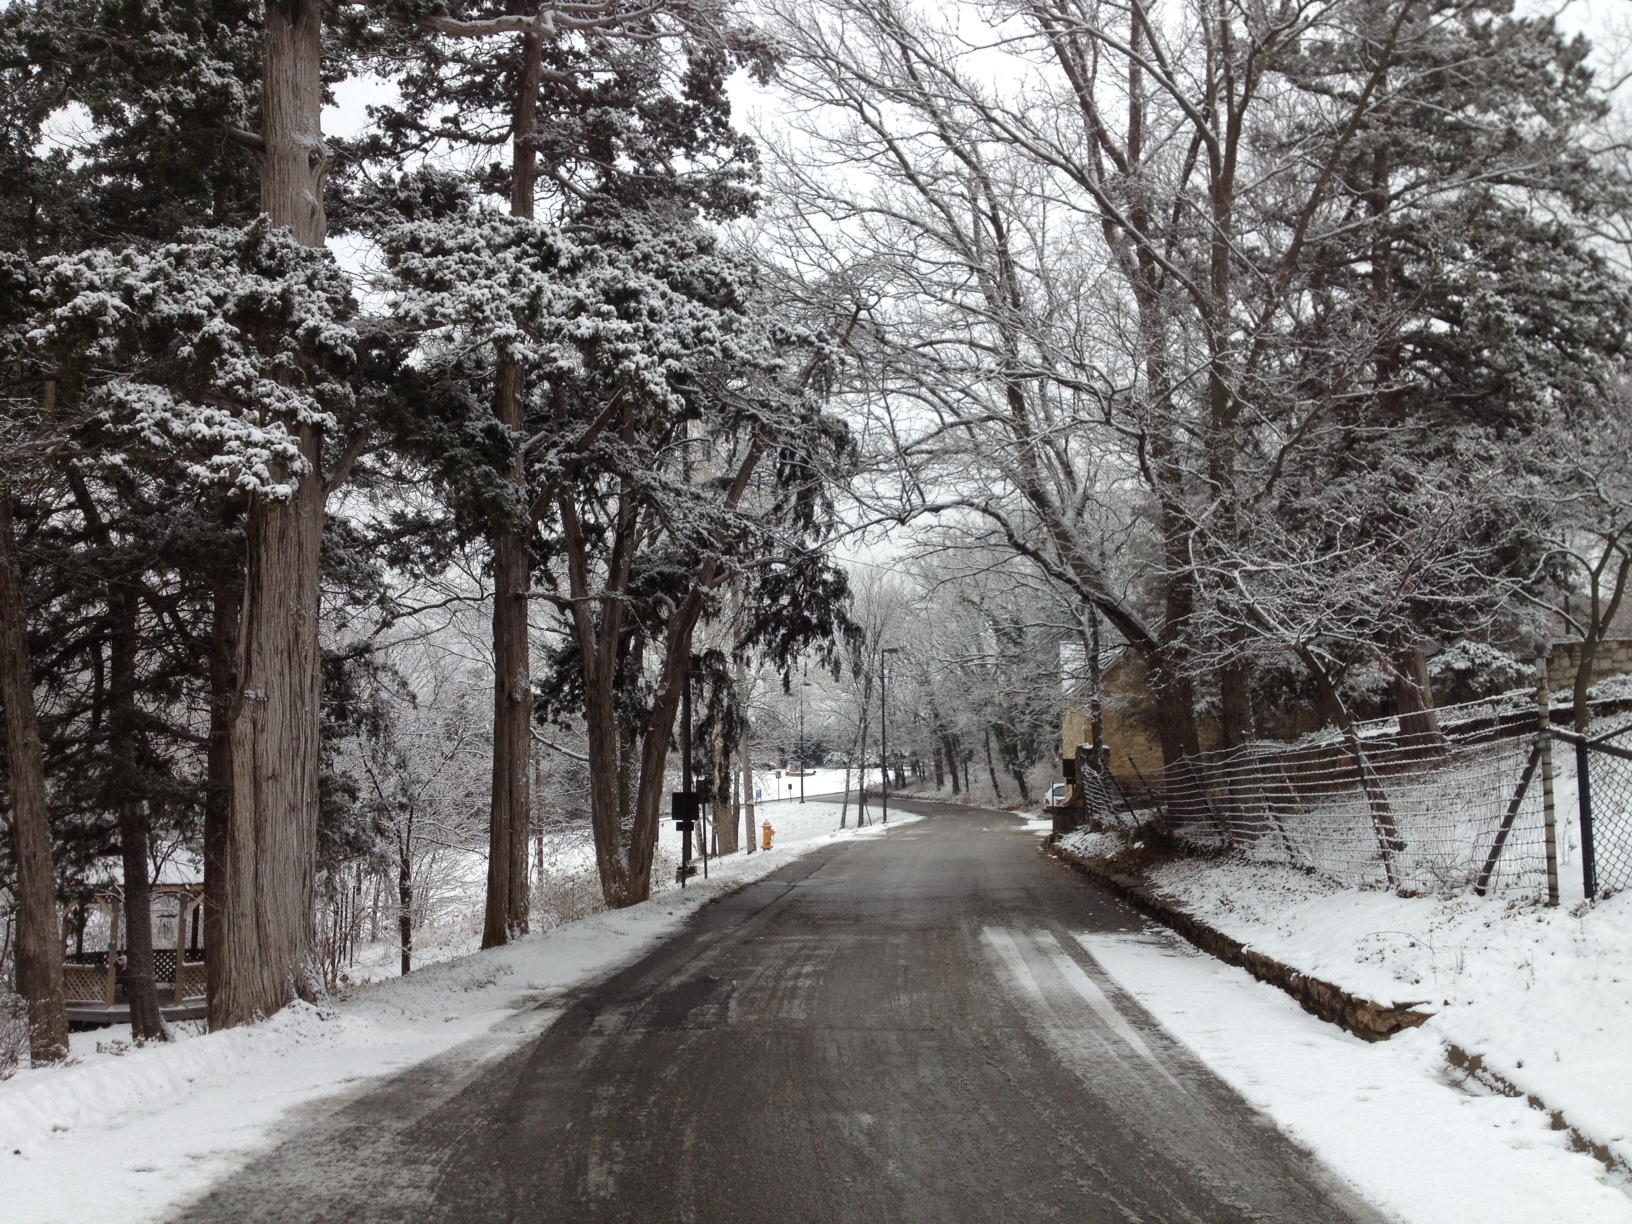 A winter scene via the driveway that leads to KPR. (File photo by J. Schafer)